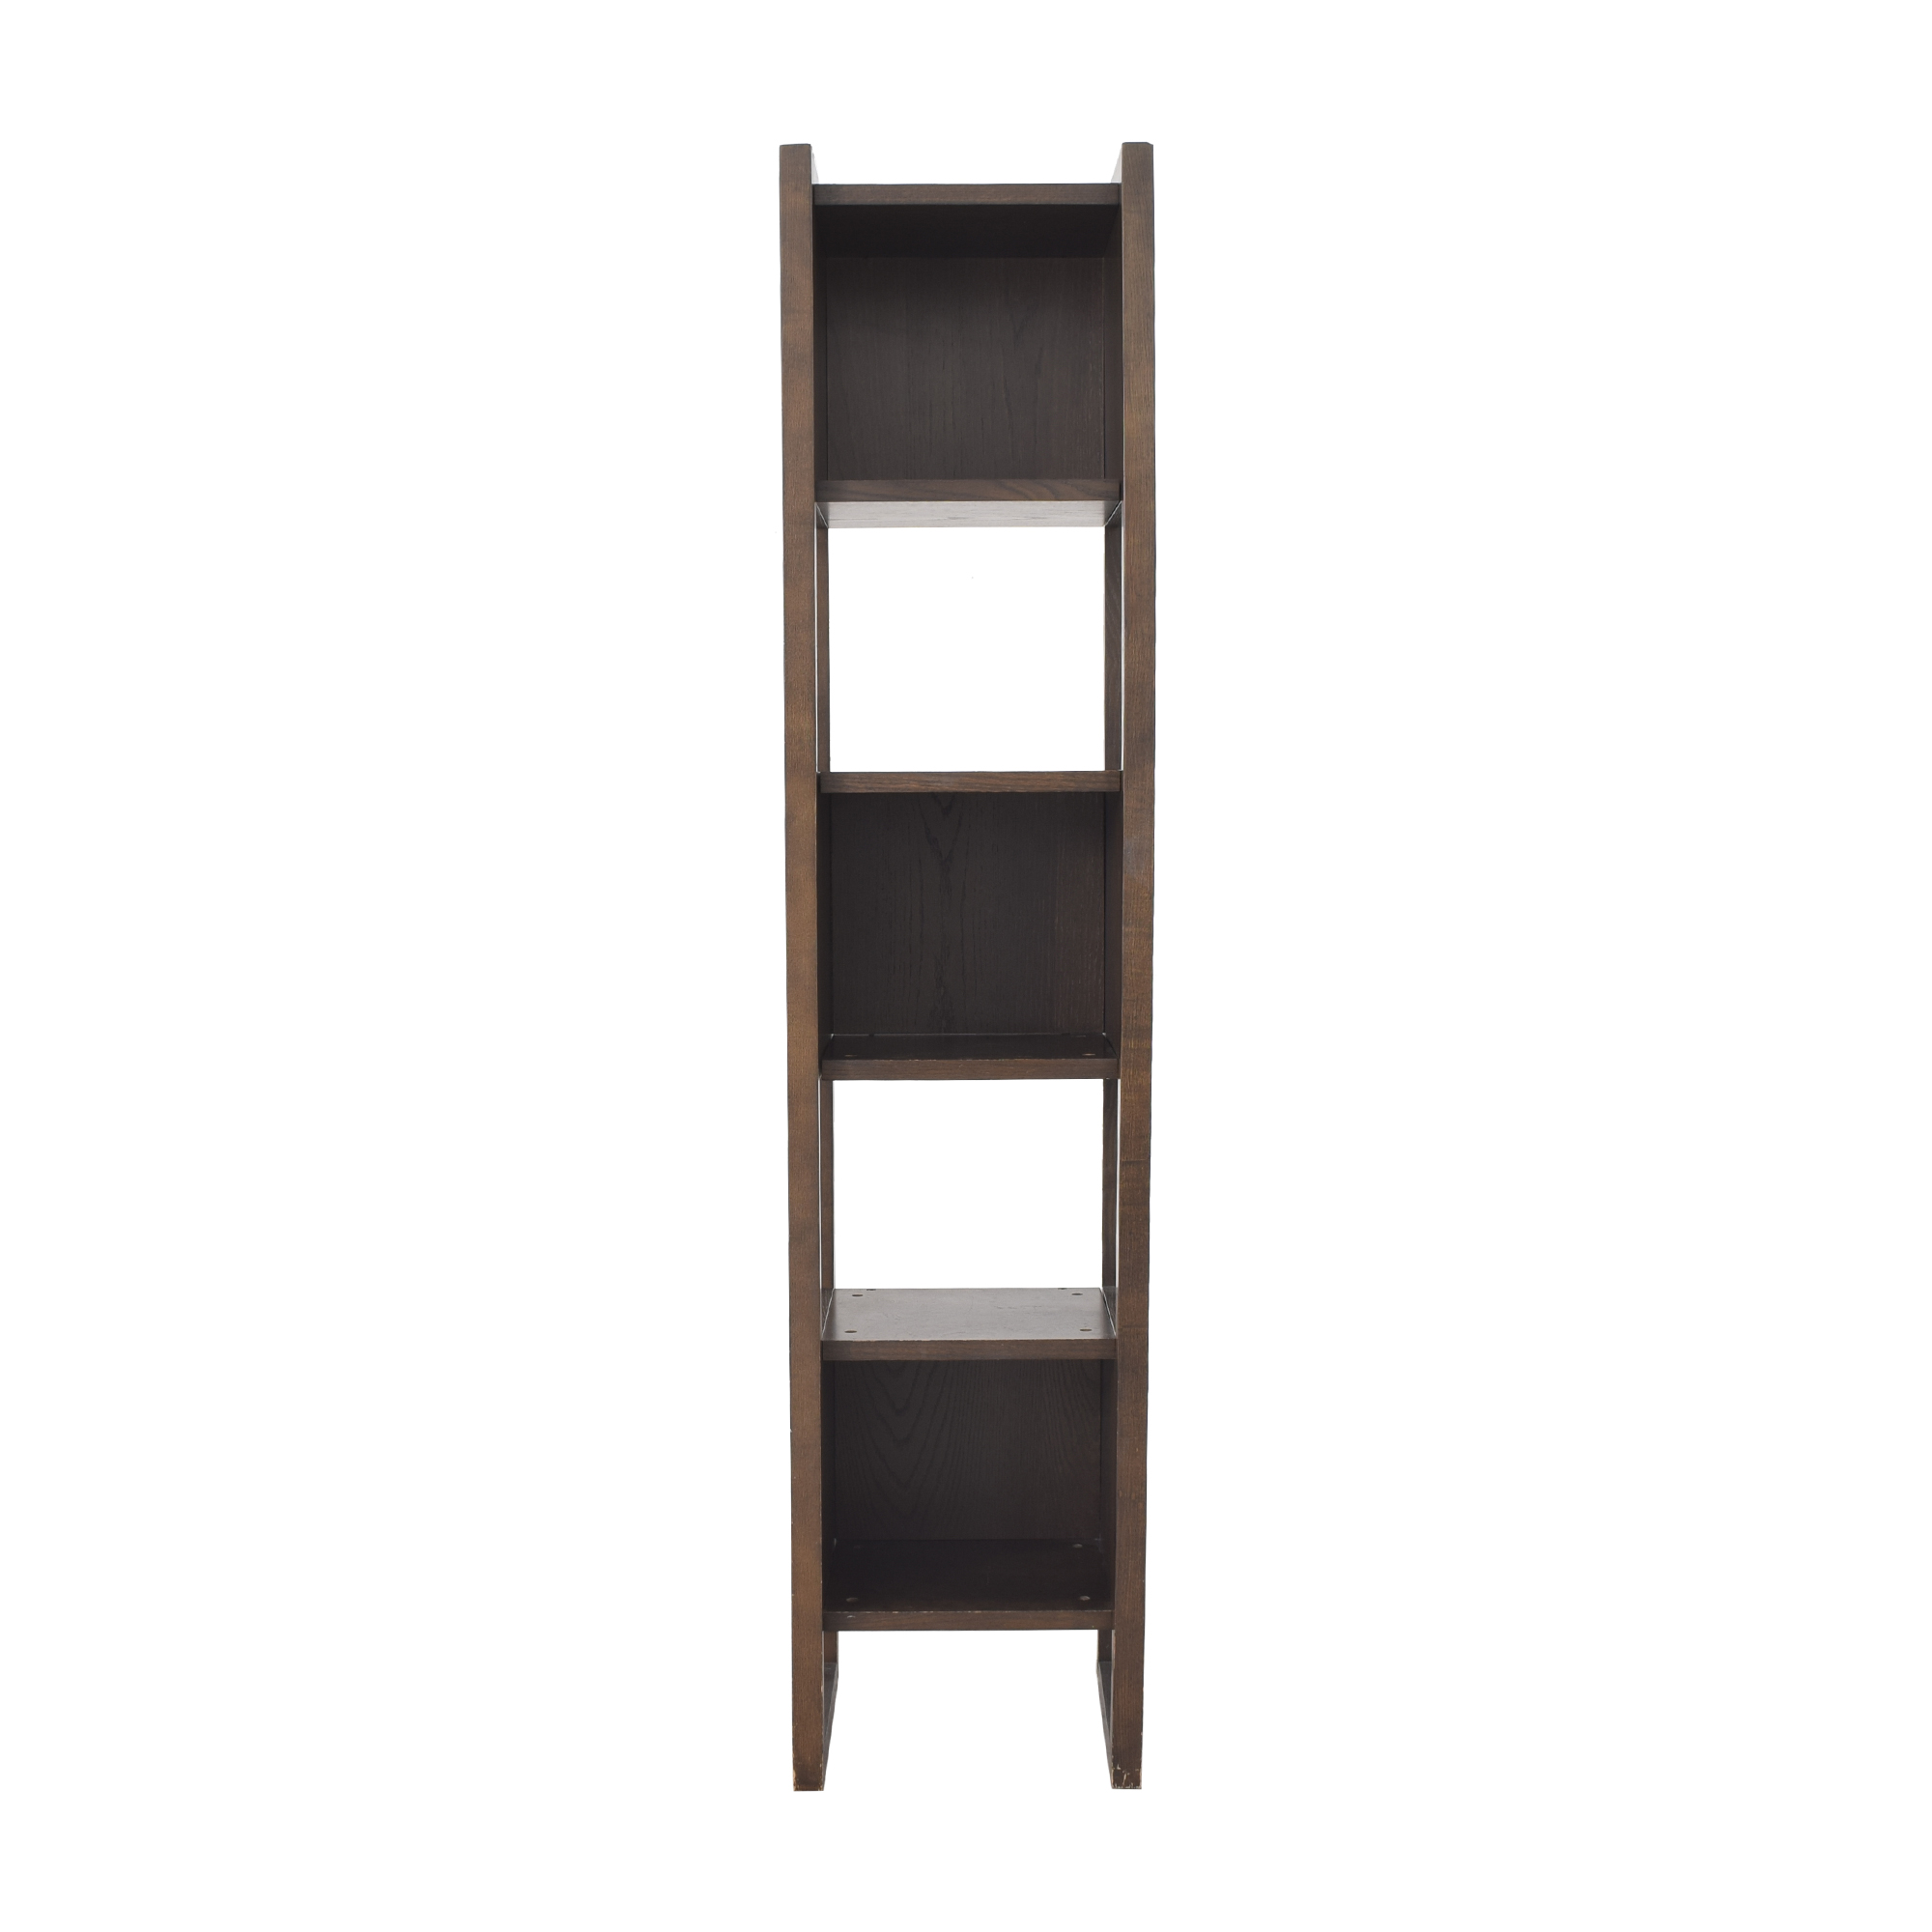 West Elm West Elm Narrow Bookshelf second hand